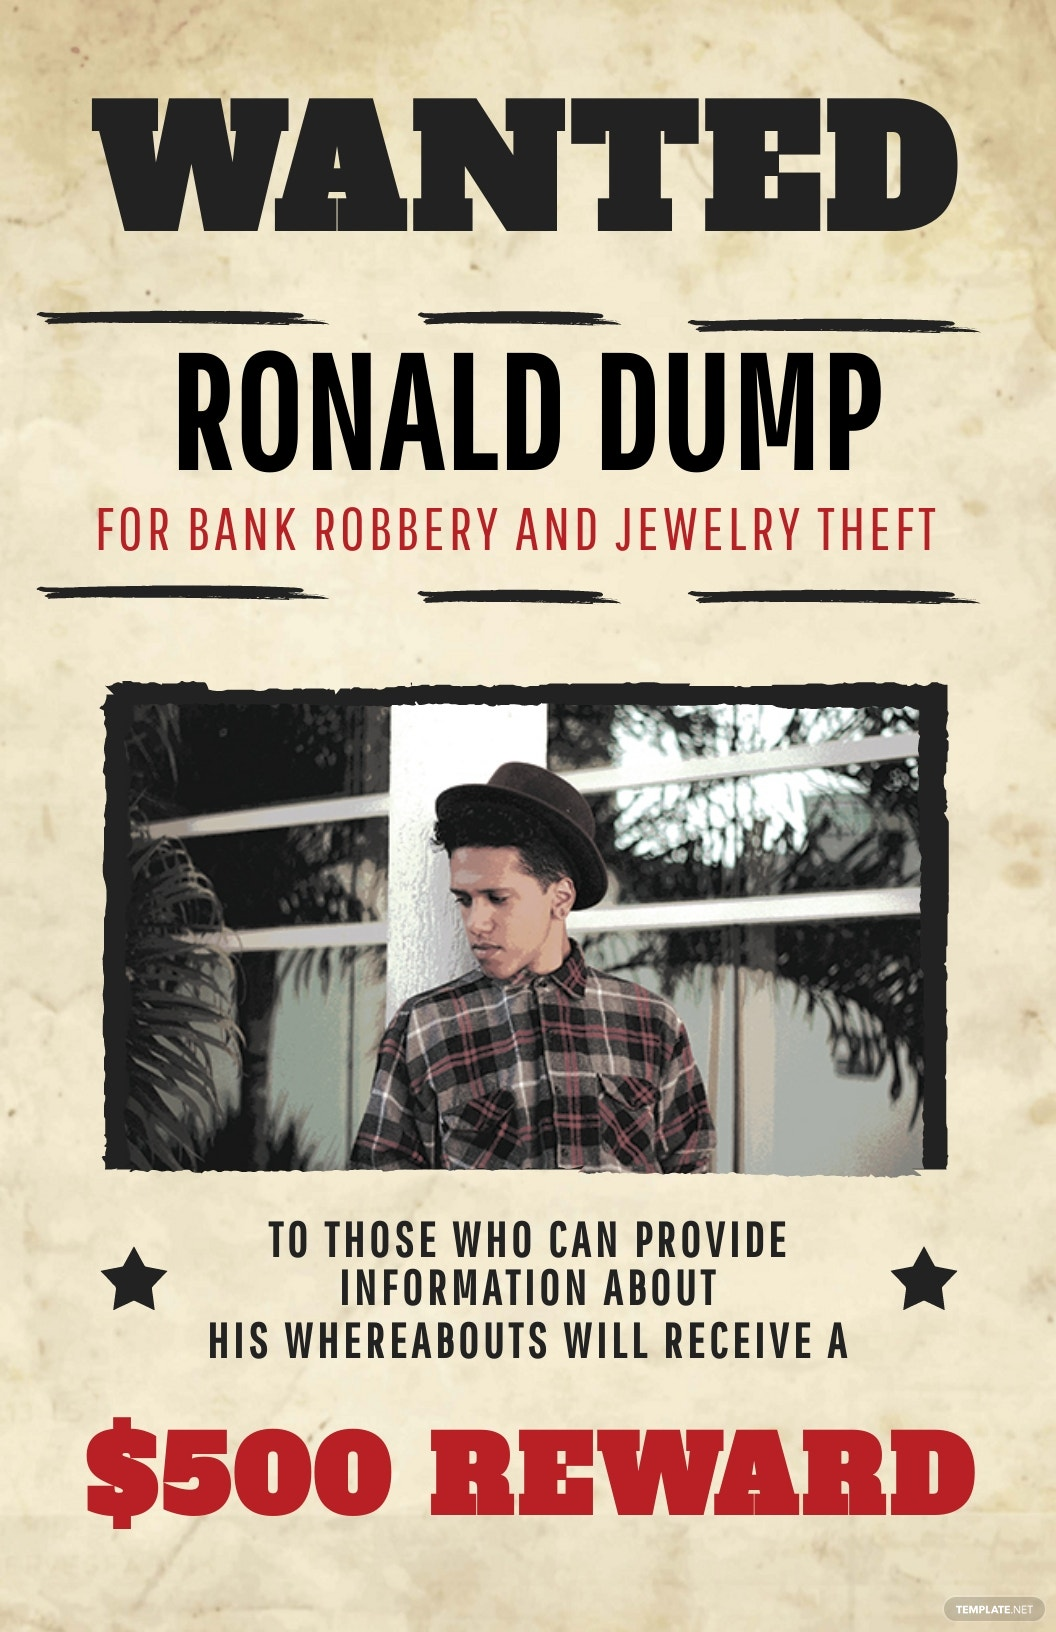 Dead or Alive Wanted Poster Template [Free JPG] - PSD